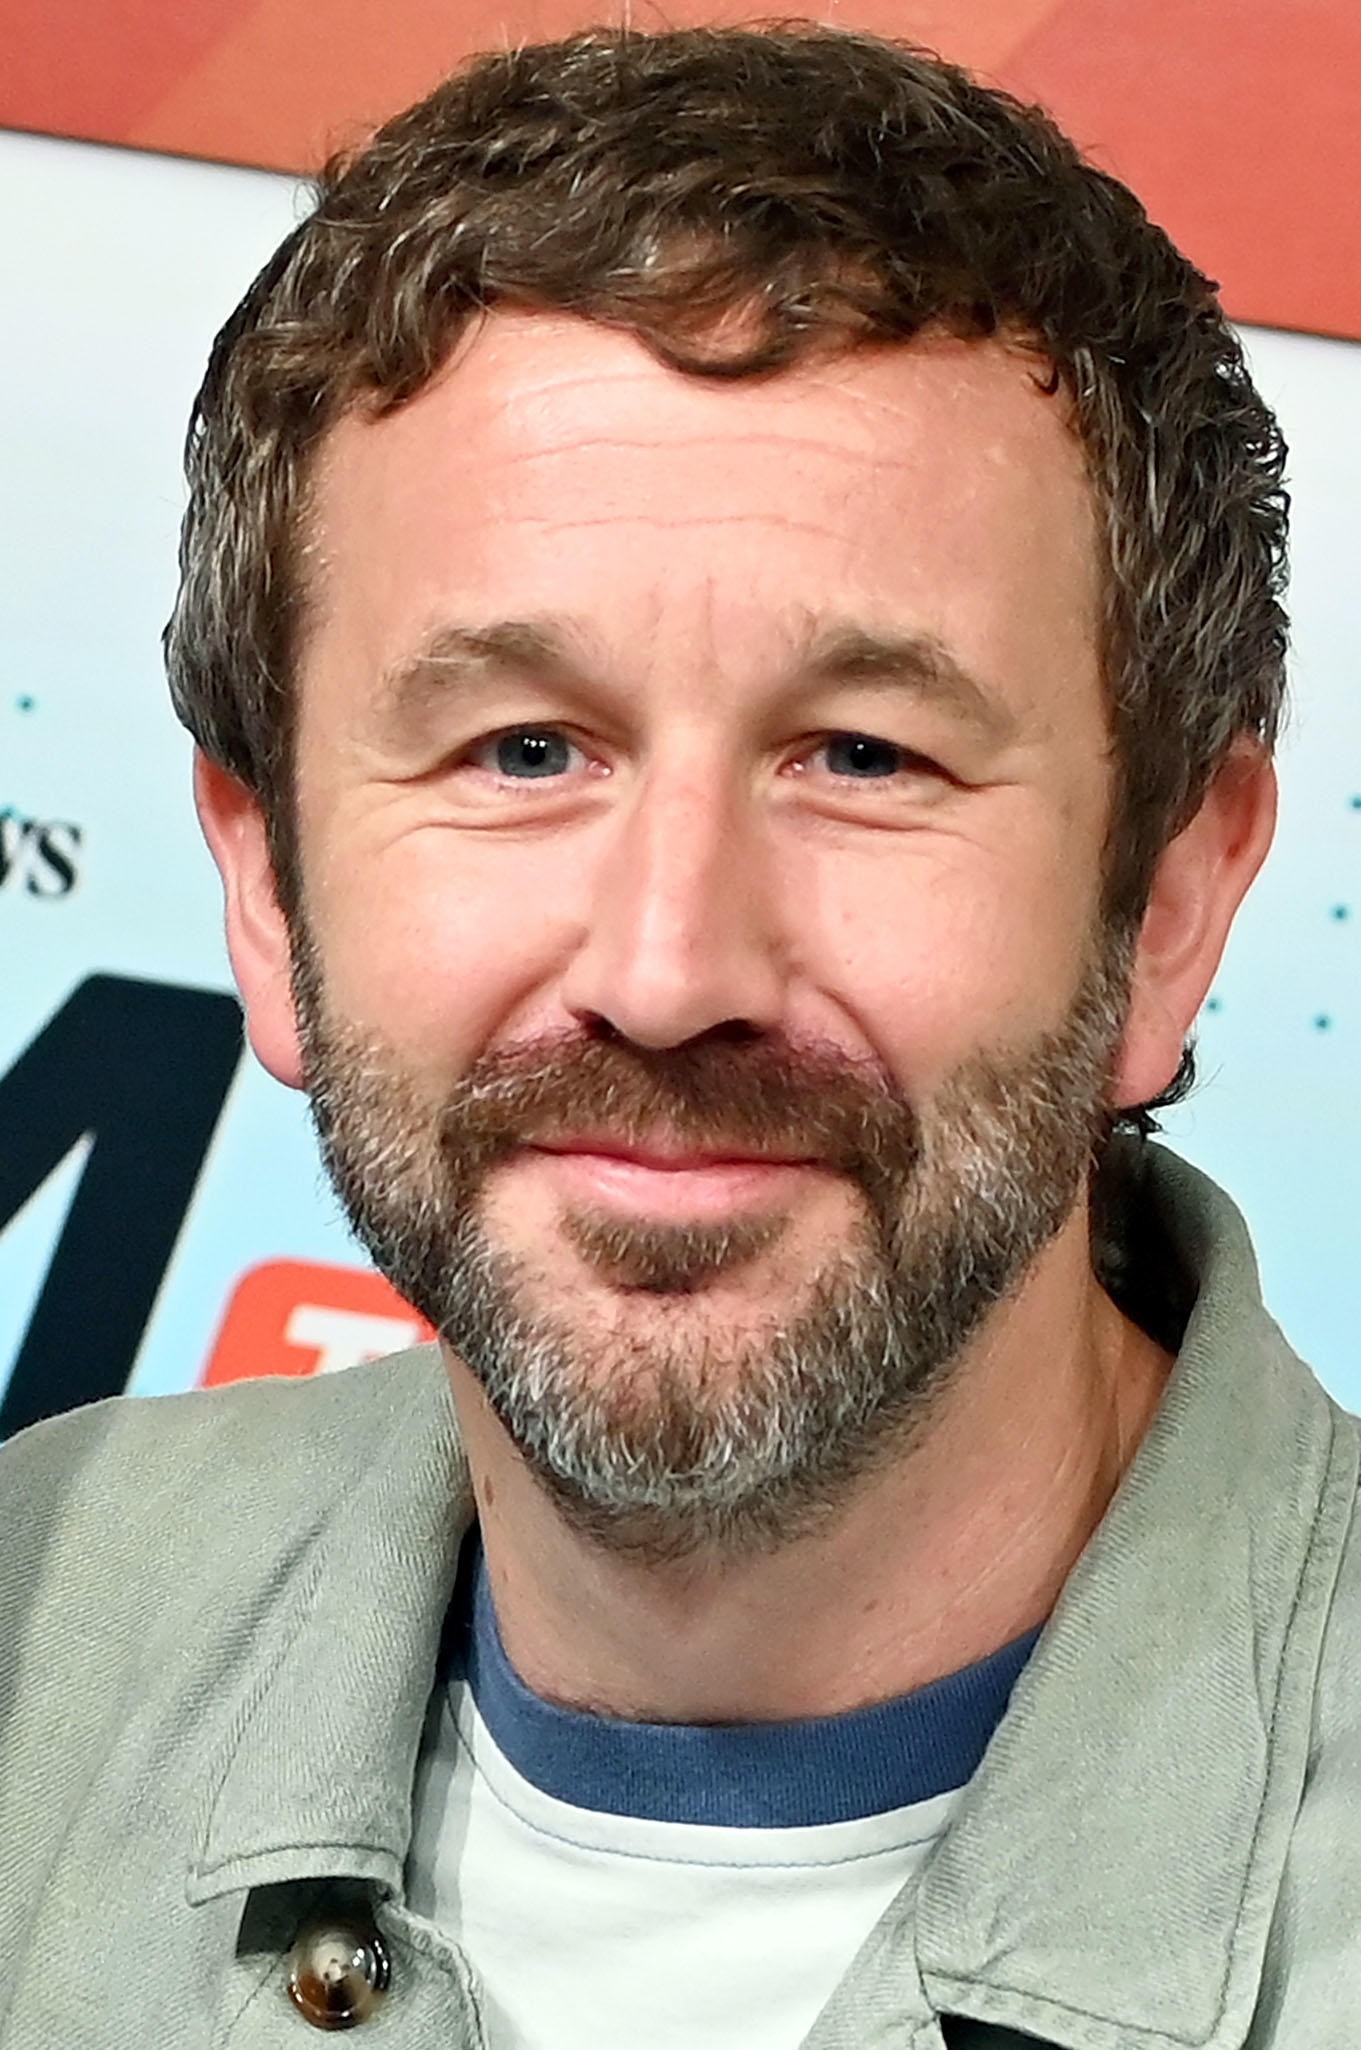 Chris O'Dowd visits BuzzFeed's